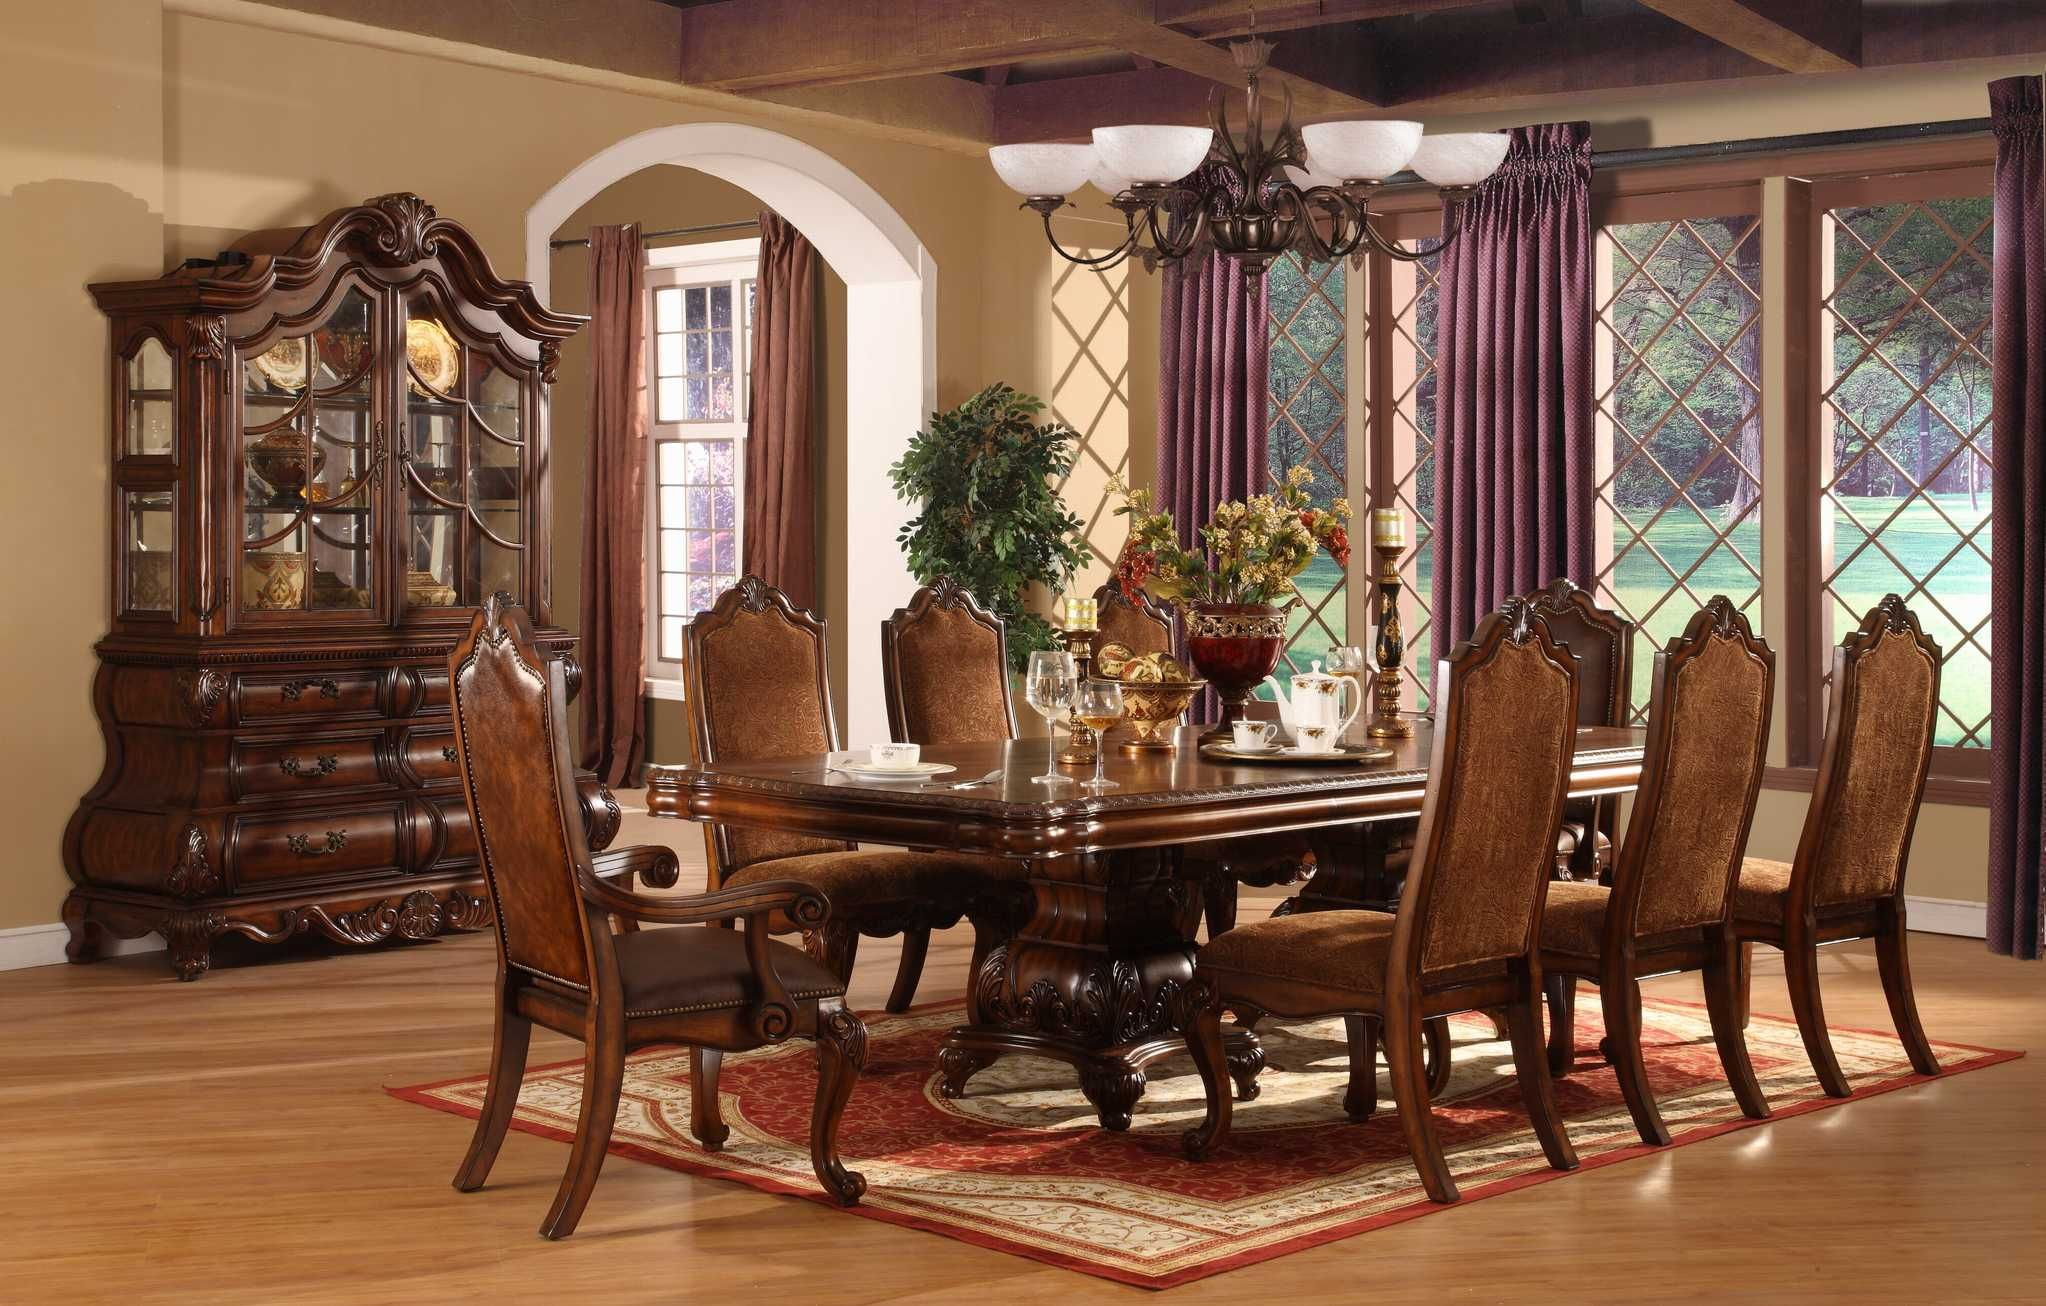 What To Look For When Buying A Dining Table Formal Dining Room Sets Velvet Living Room Furniture Formal Dining Room Furniture